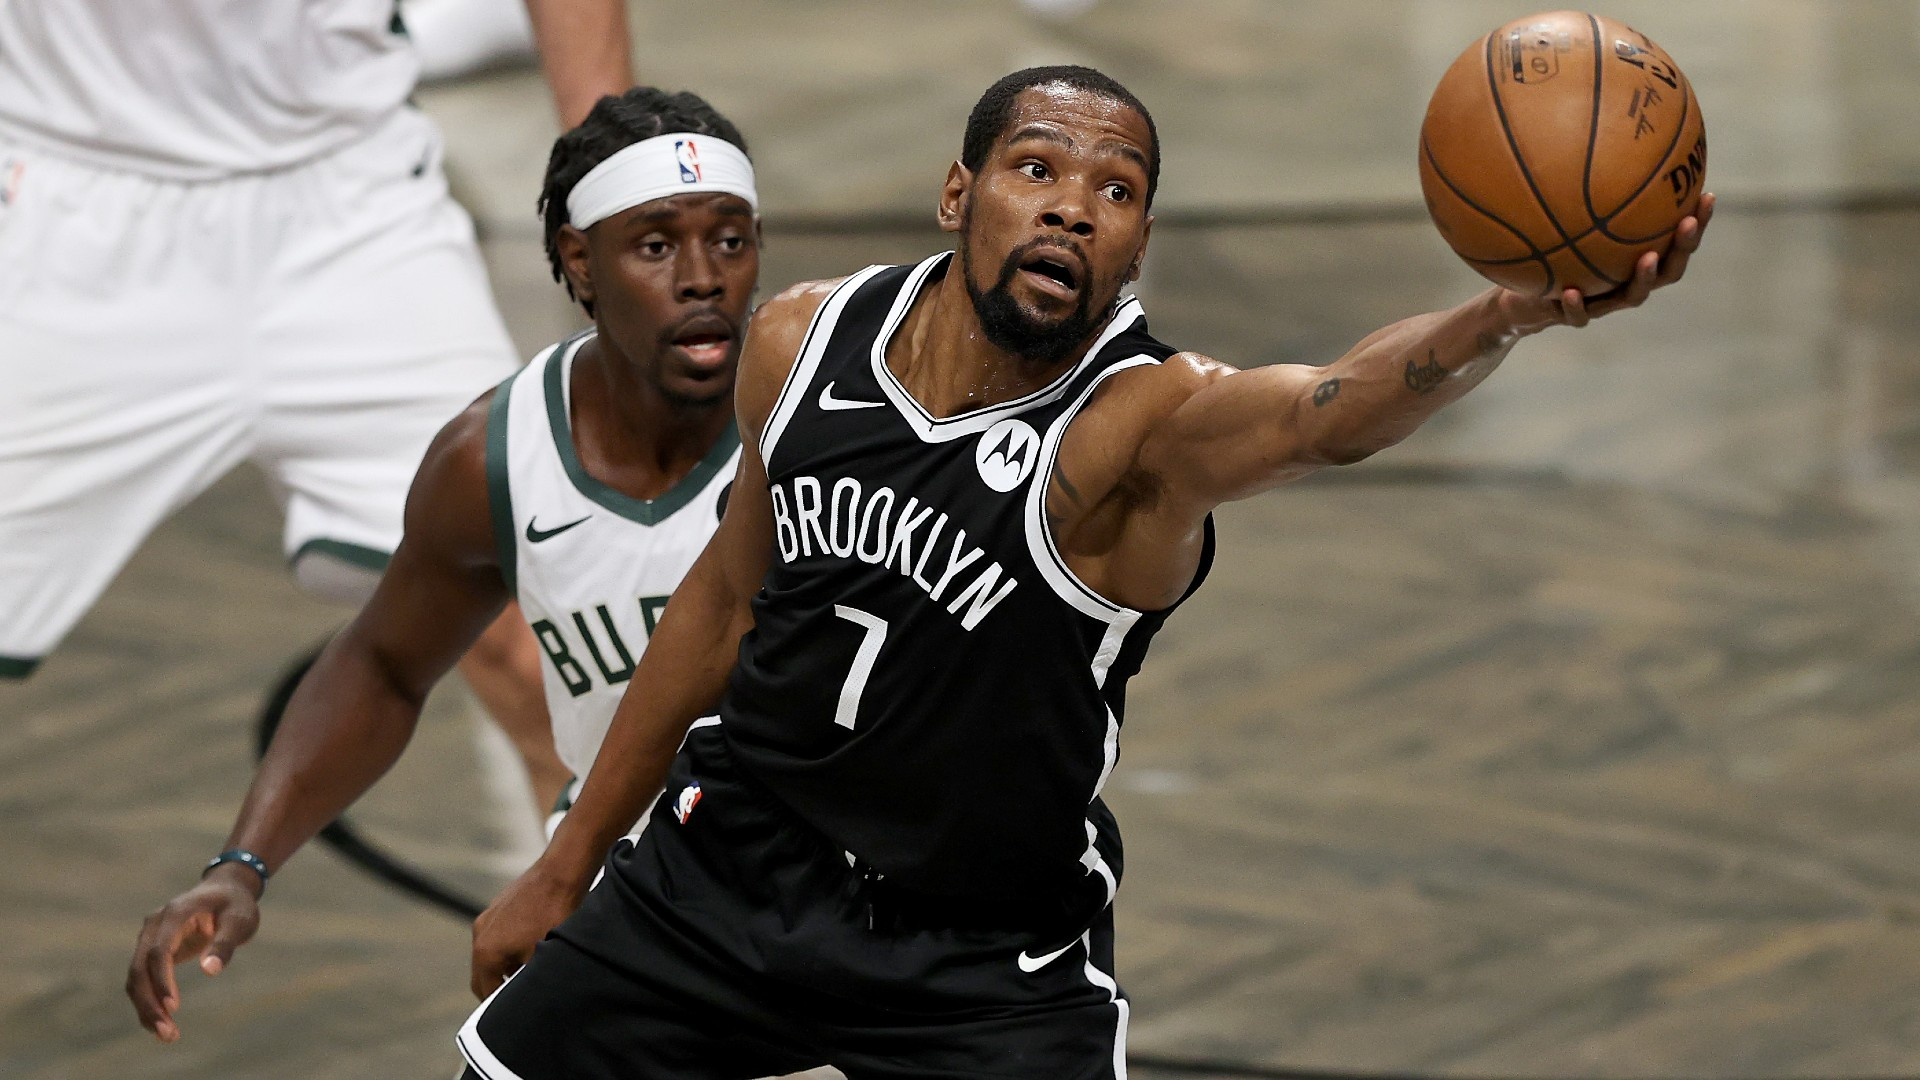 Nets 'Kevin Durant joined Team USA at the Tokyo Olympics for Game 7 against the Bucks, the report says